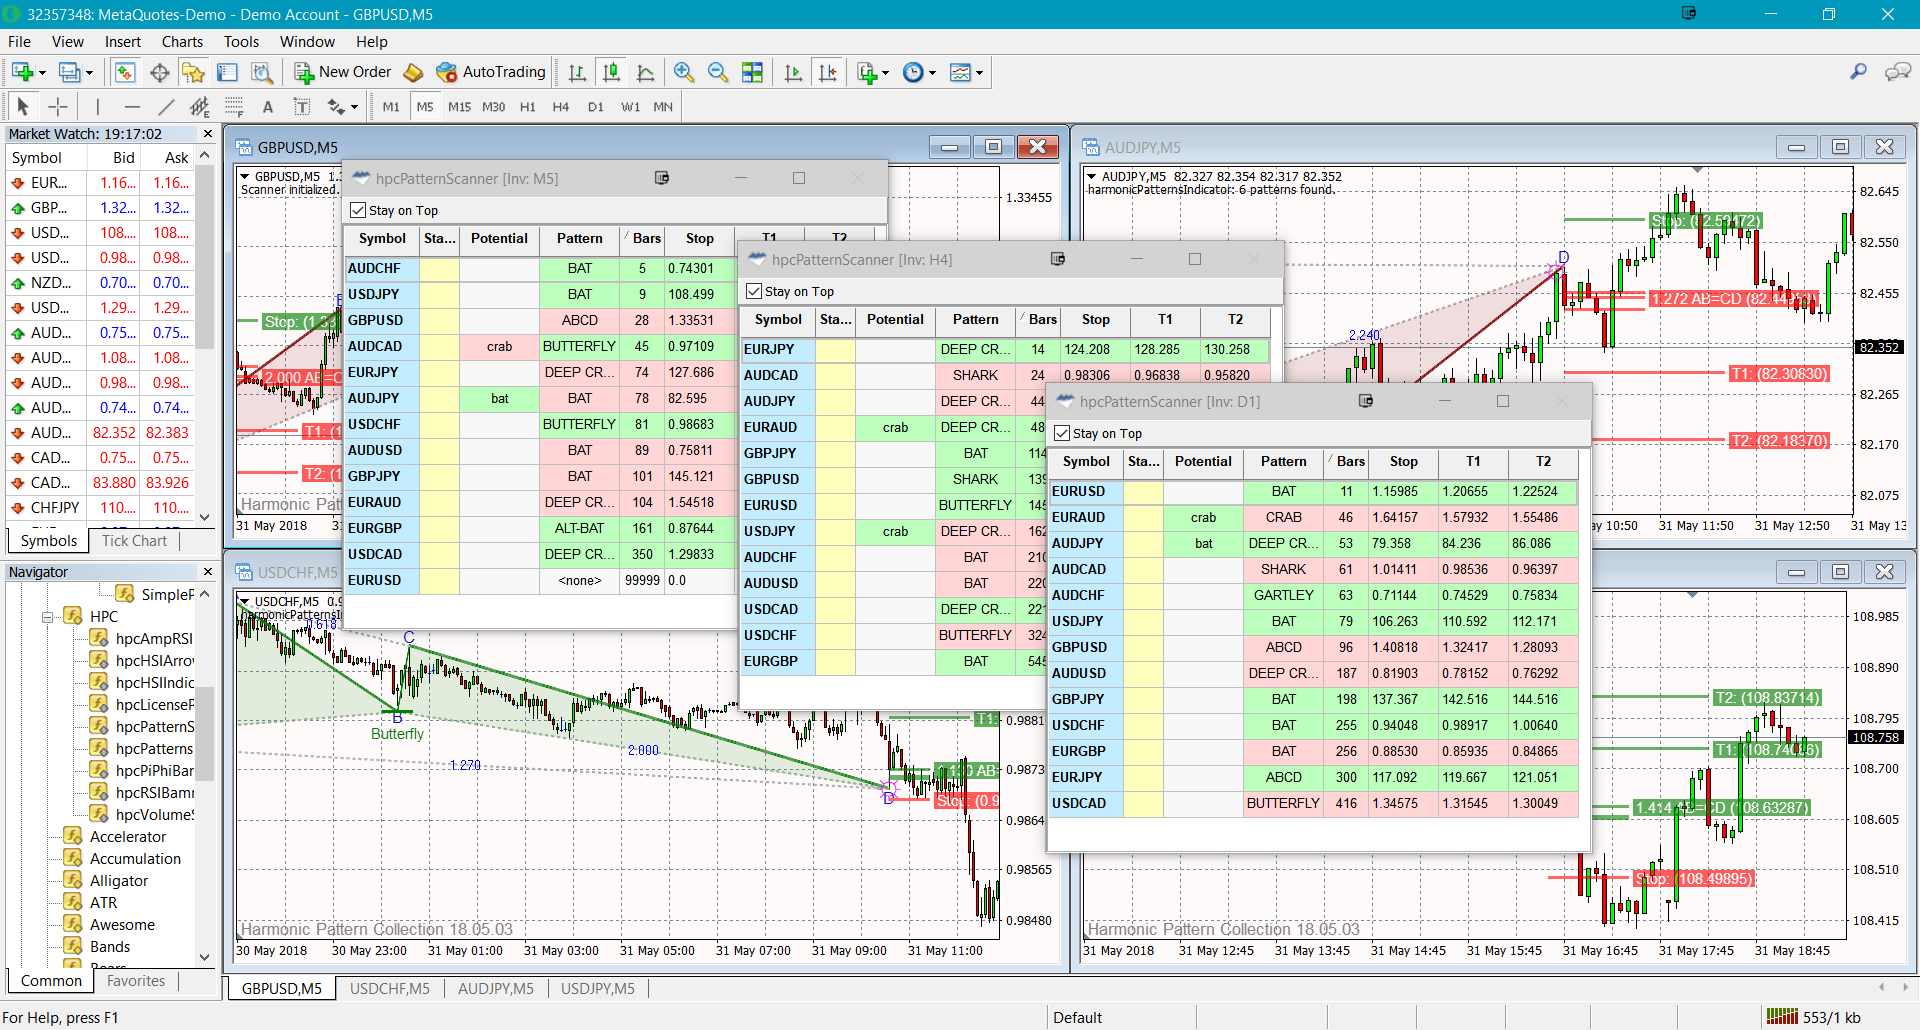 Divergence Software, Inc  - Harmonic Pattern Collection MetaTrader 4